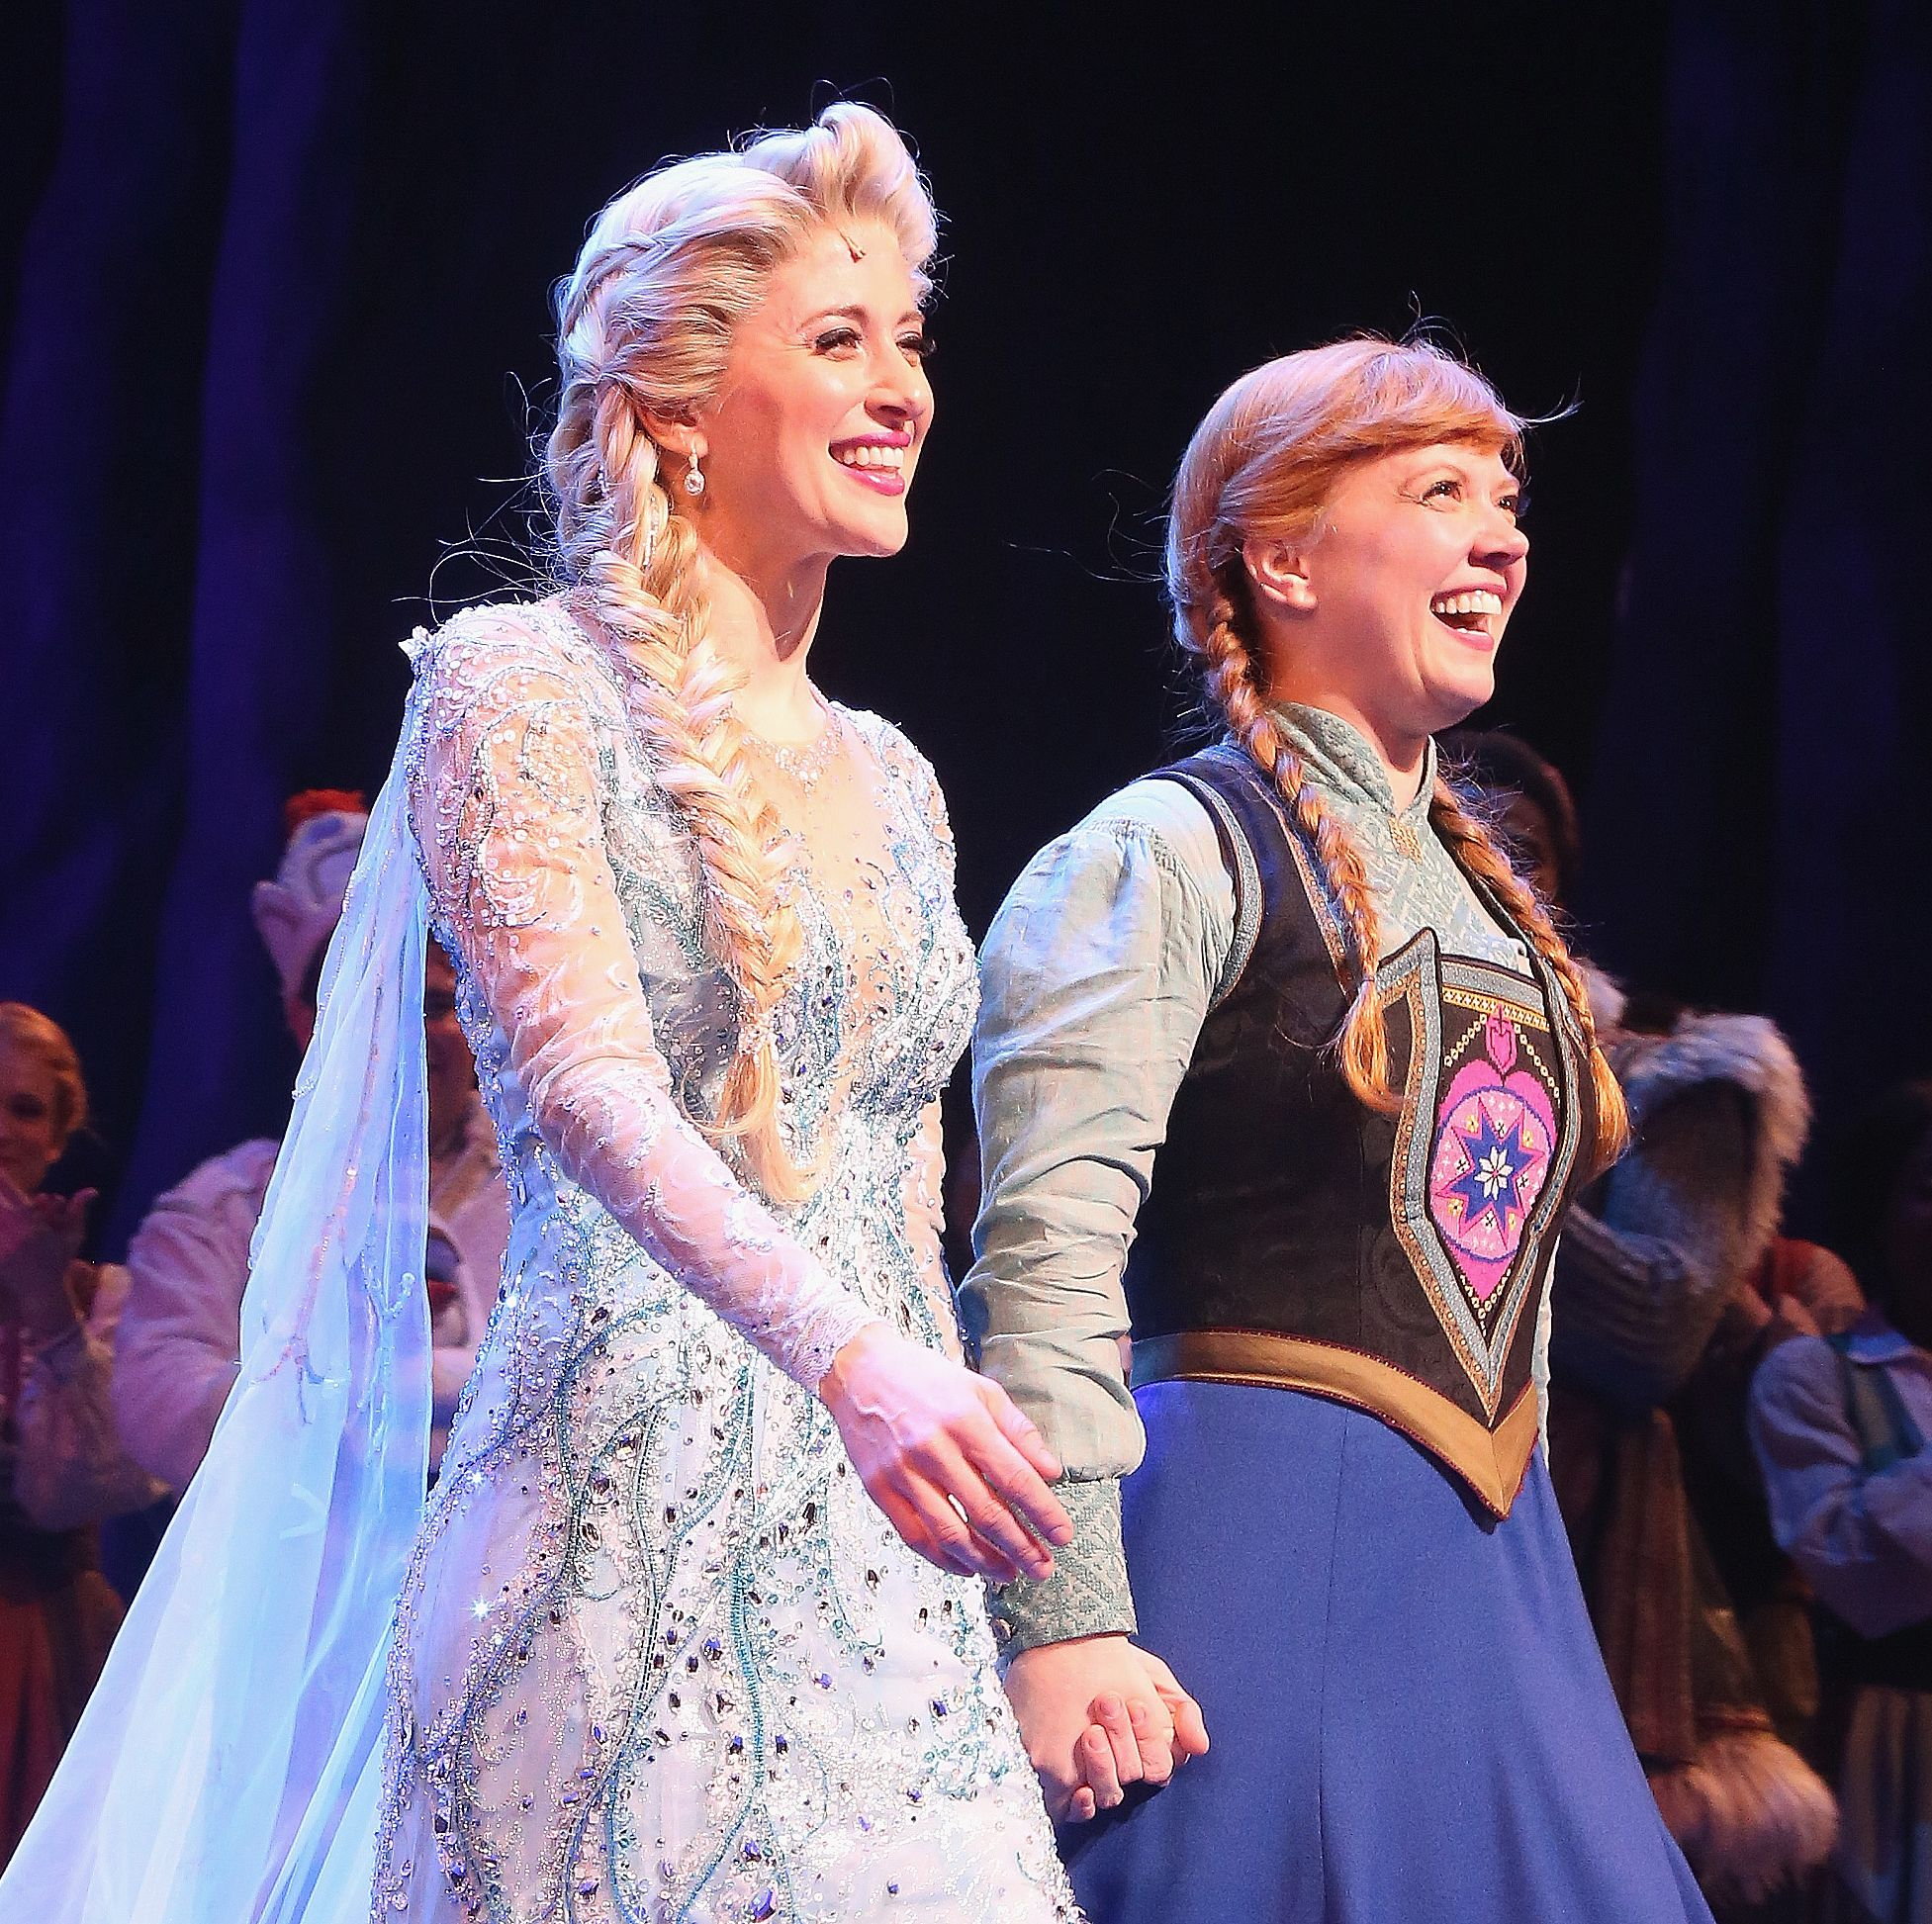 Disney's Frozen musical is finally coming to the UK